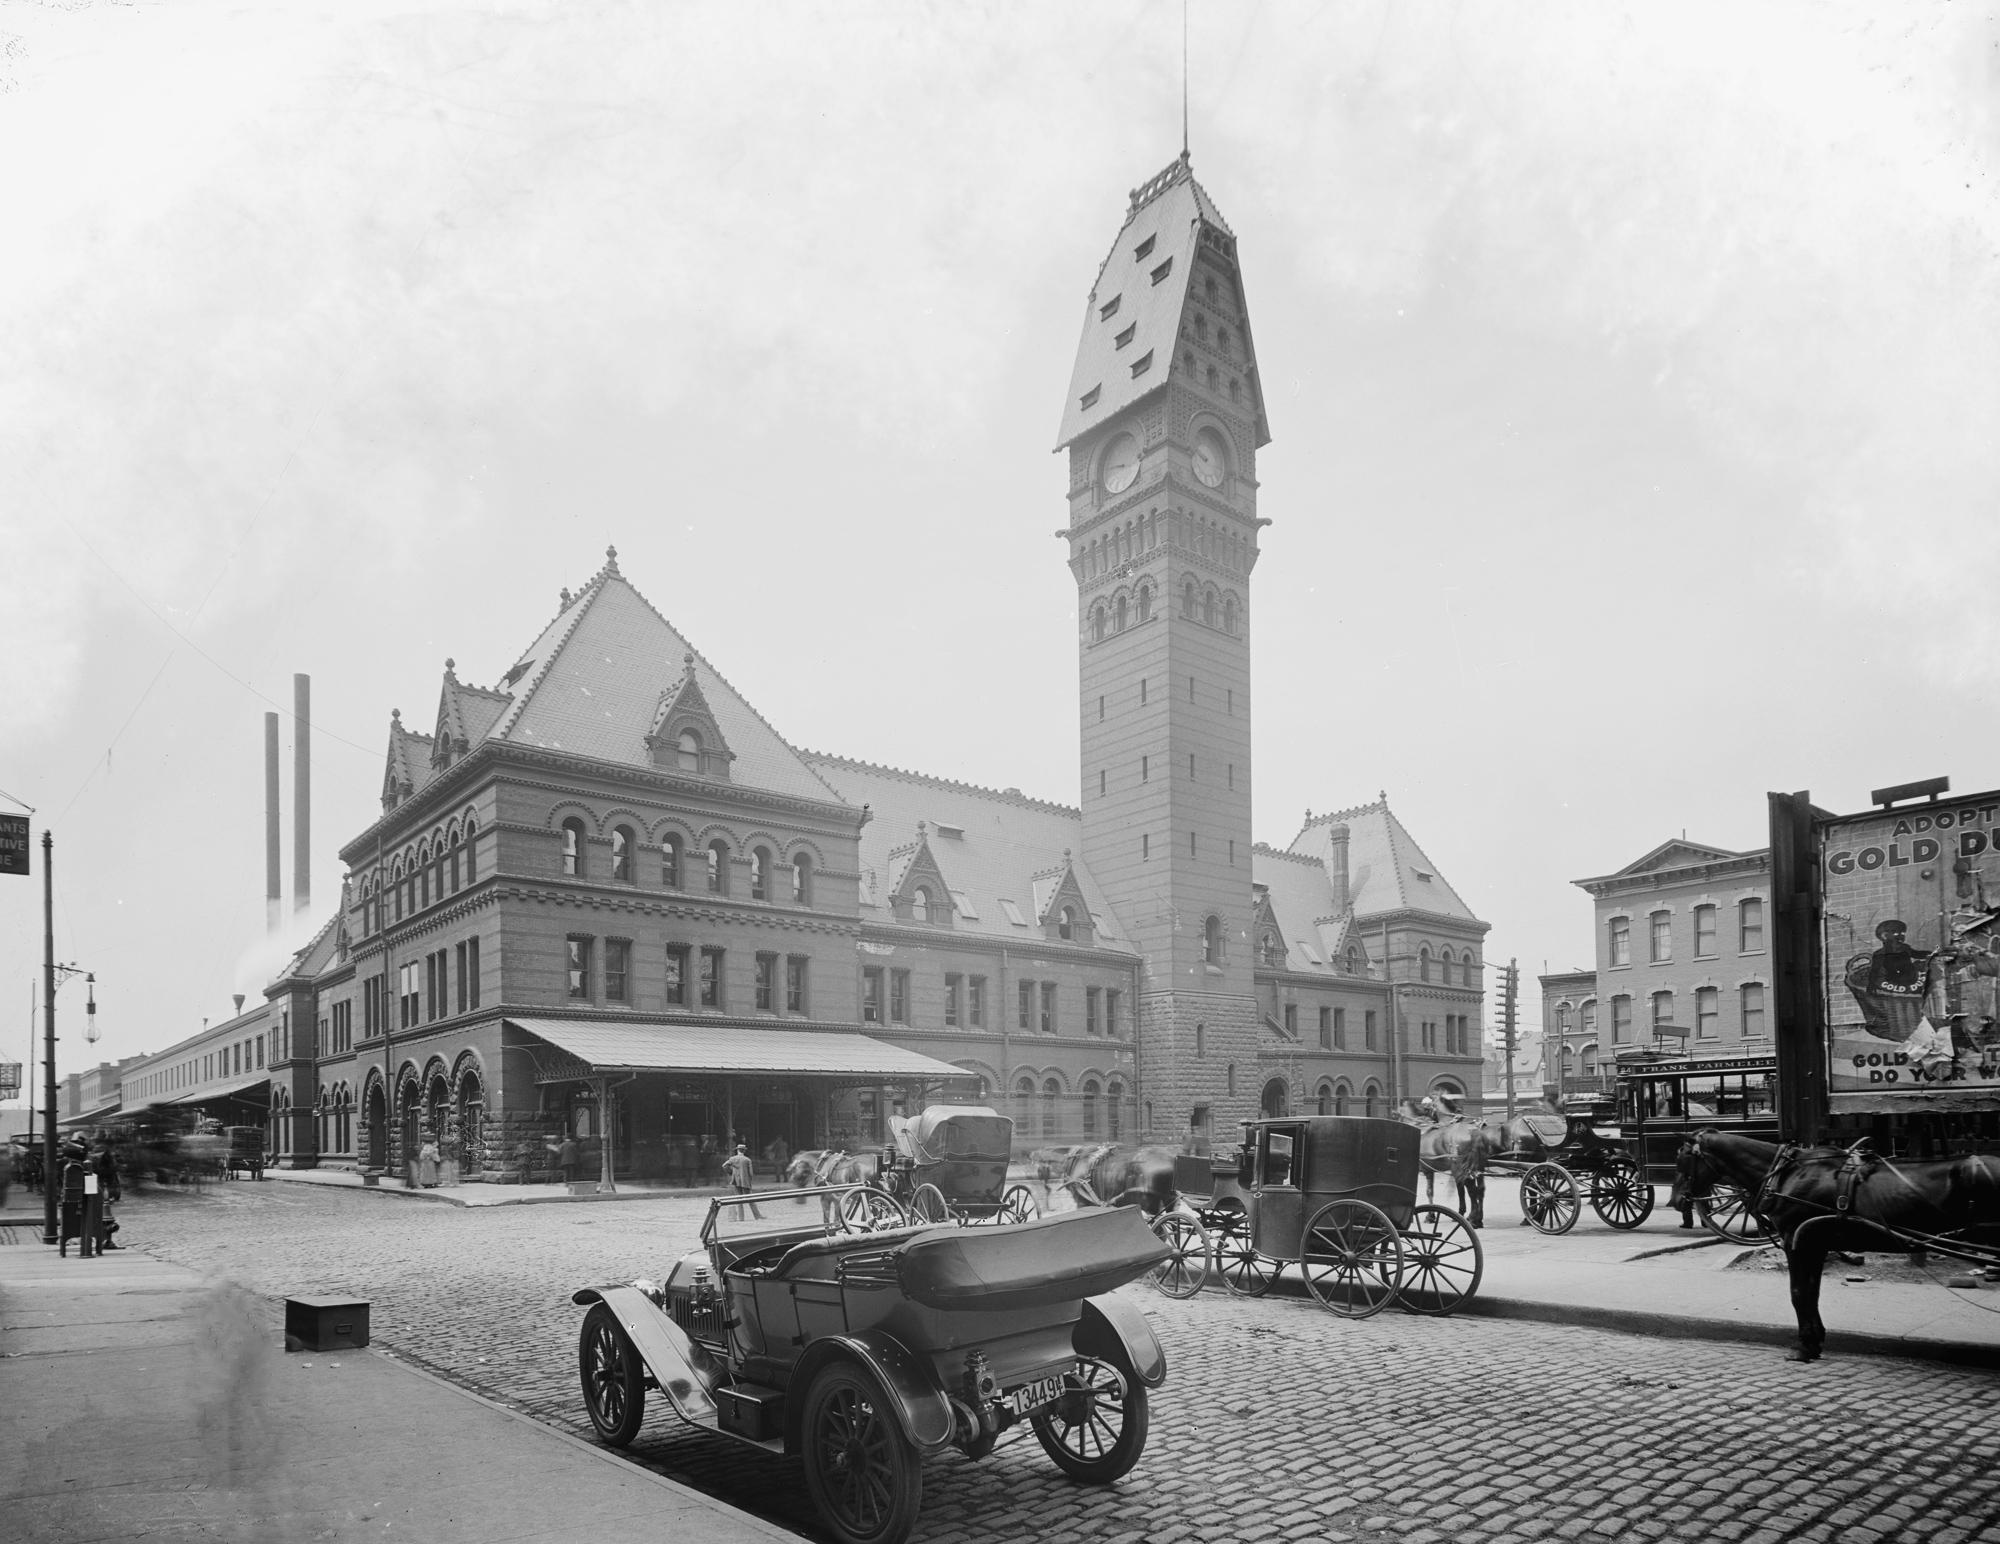 In 1922, a fire damaged the clock tower. This picture notes the pitched roof that existed prior to that fire. Photo provided by American-railway.com, but owned by Detroit Publishing Company.